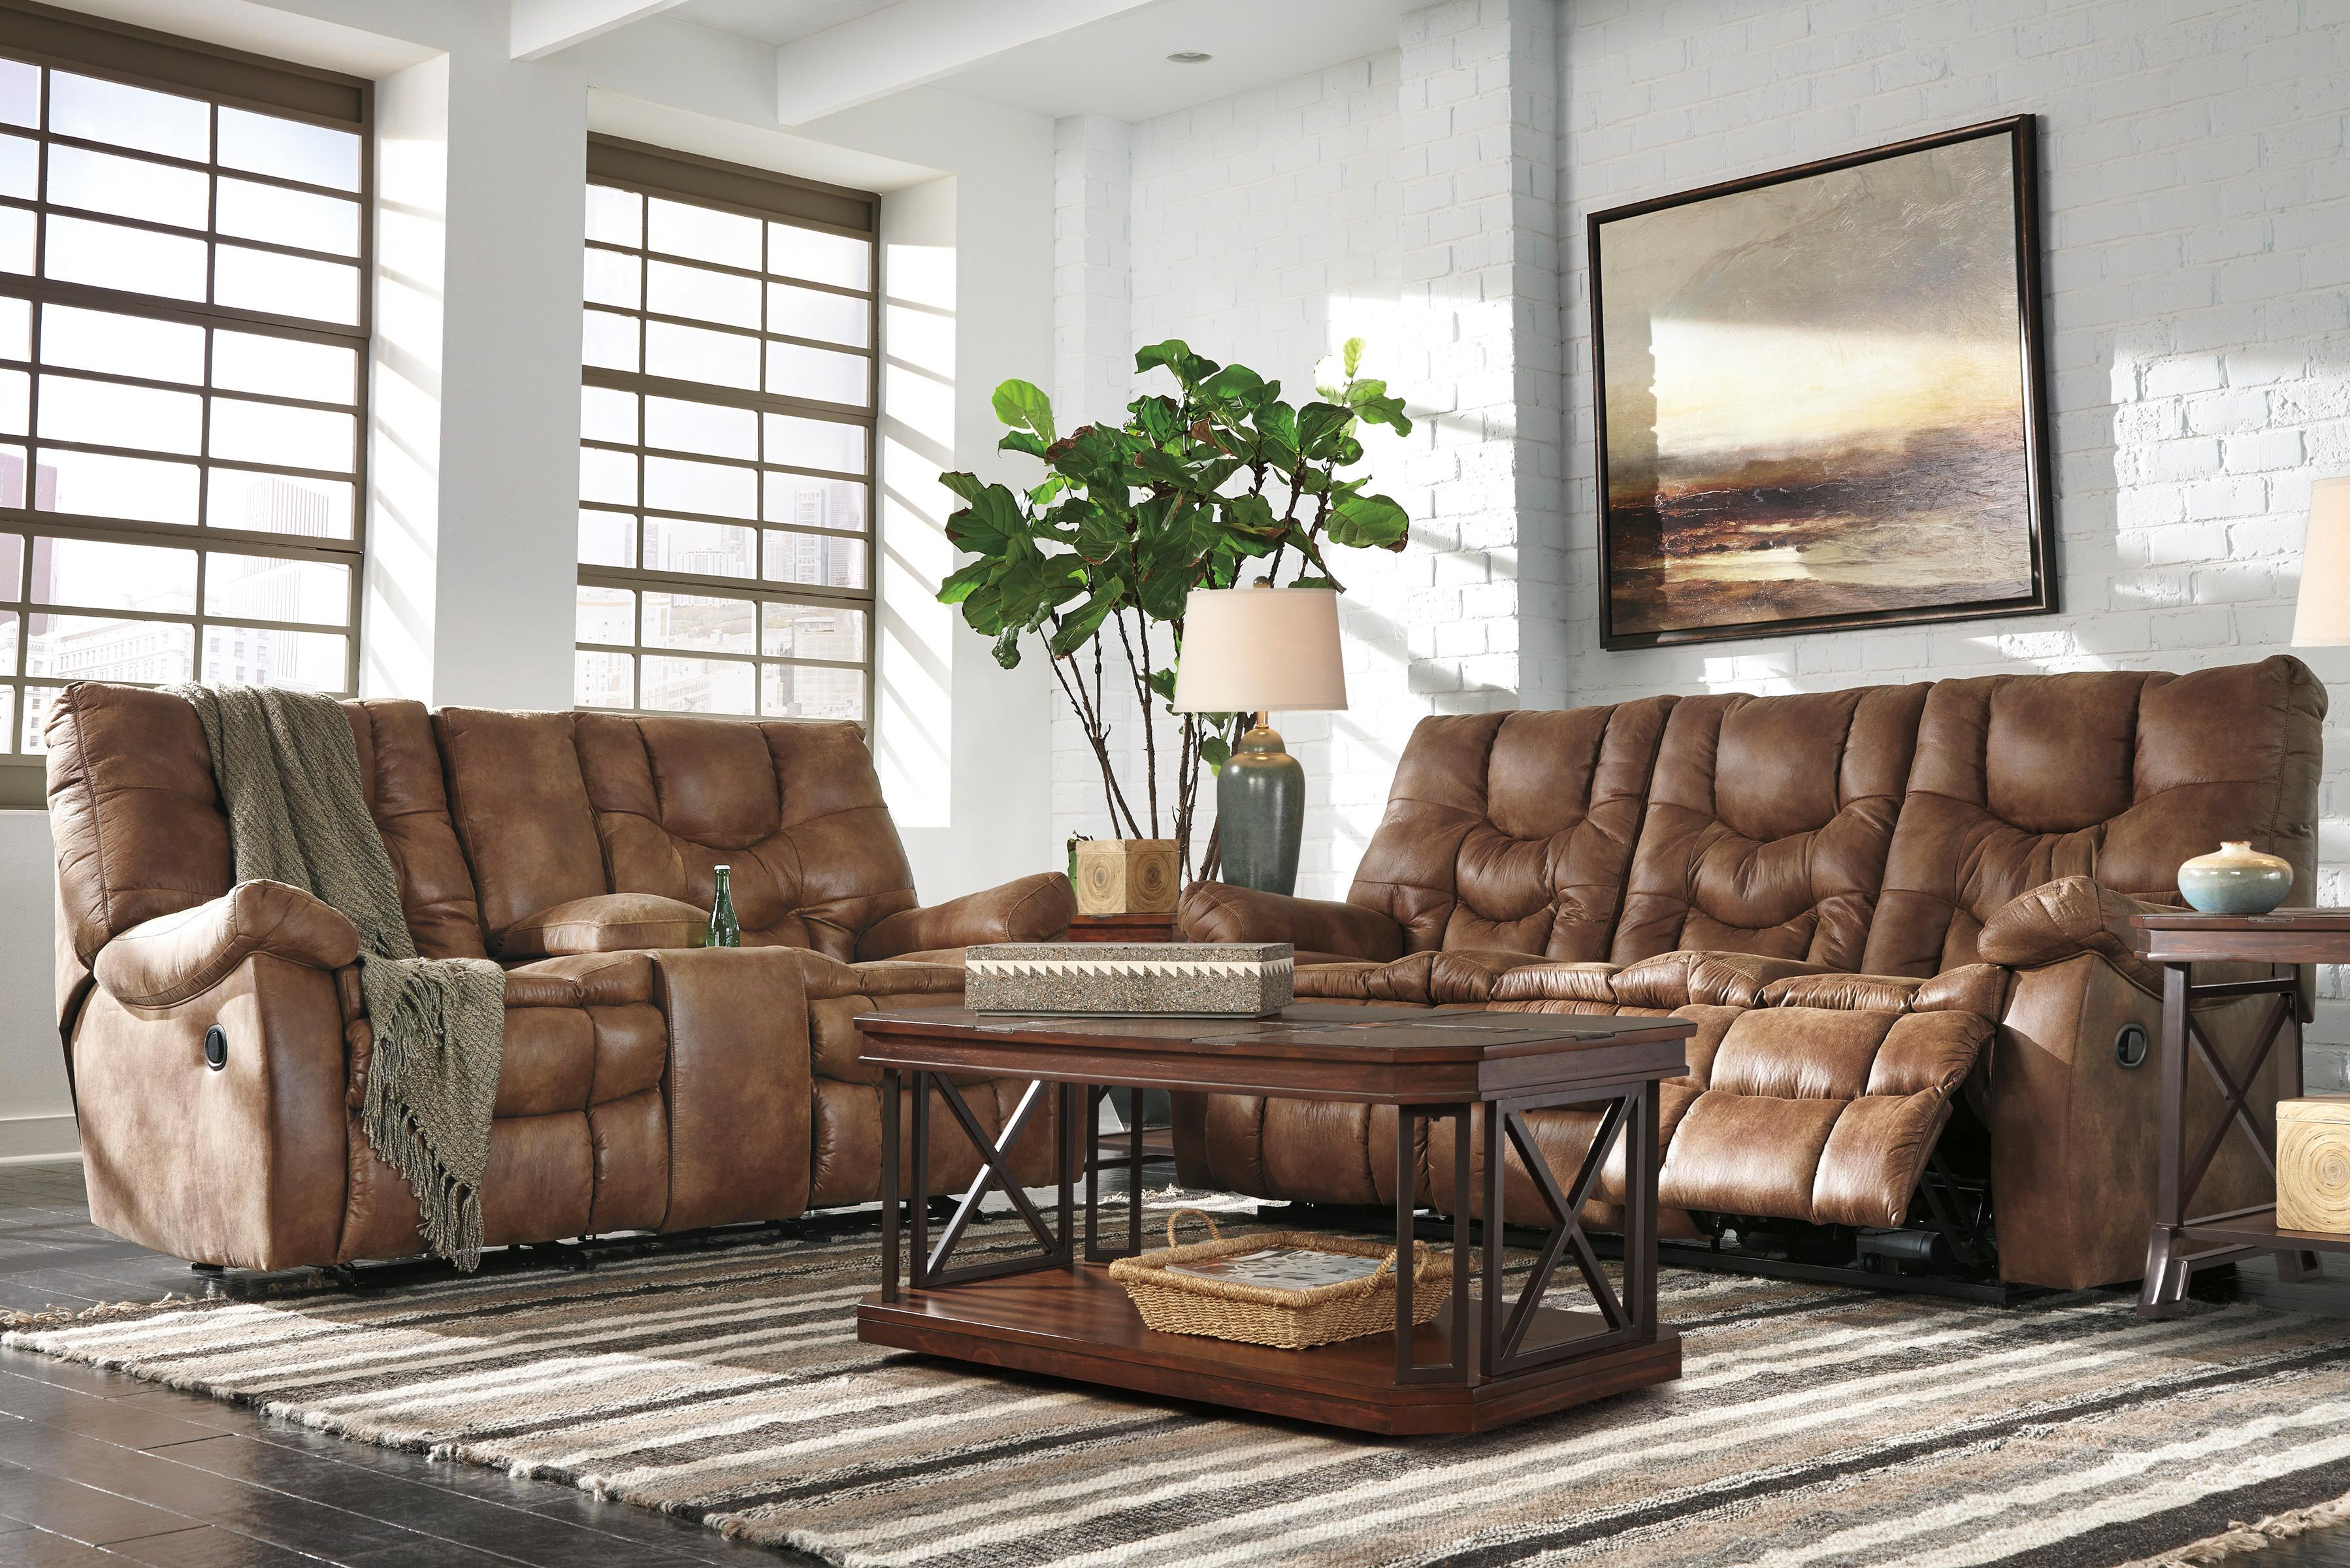 Kick back in the comfort of the Darshmore reclining sofa. Pillowy cushions surround the entire body as you settle in for a movie or sleep marathon. Both sides individually recline at the pull of a tab. Plush upholstery is welcoming and easy-care.